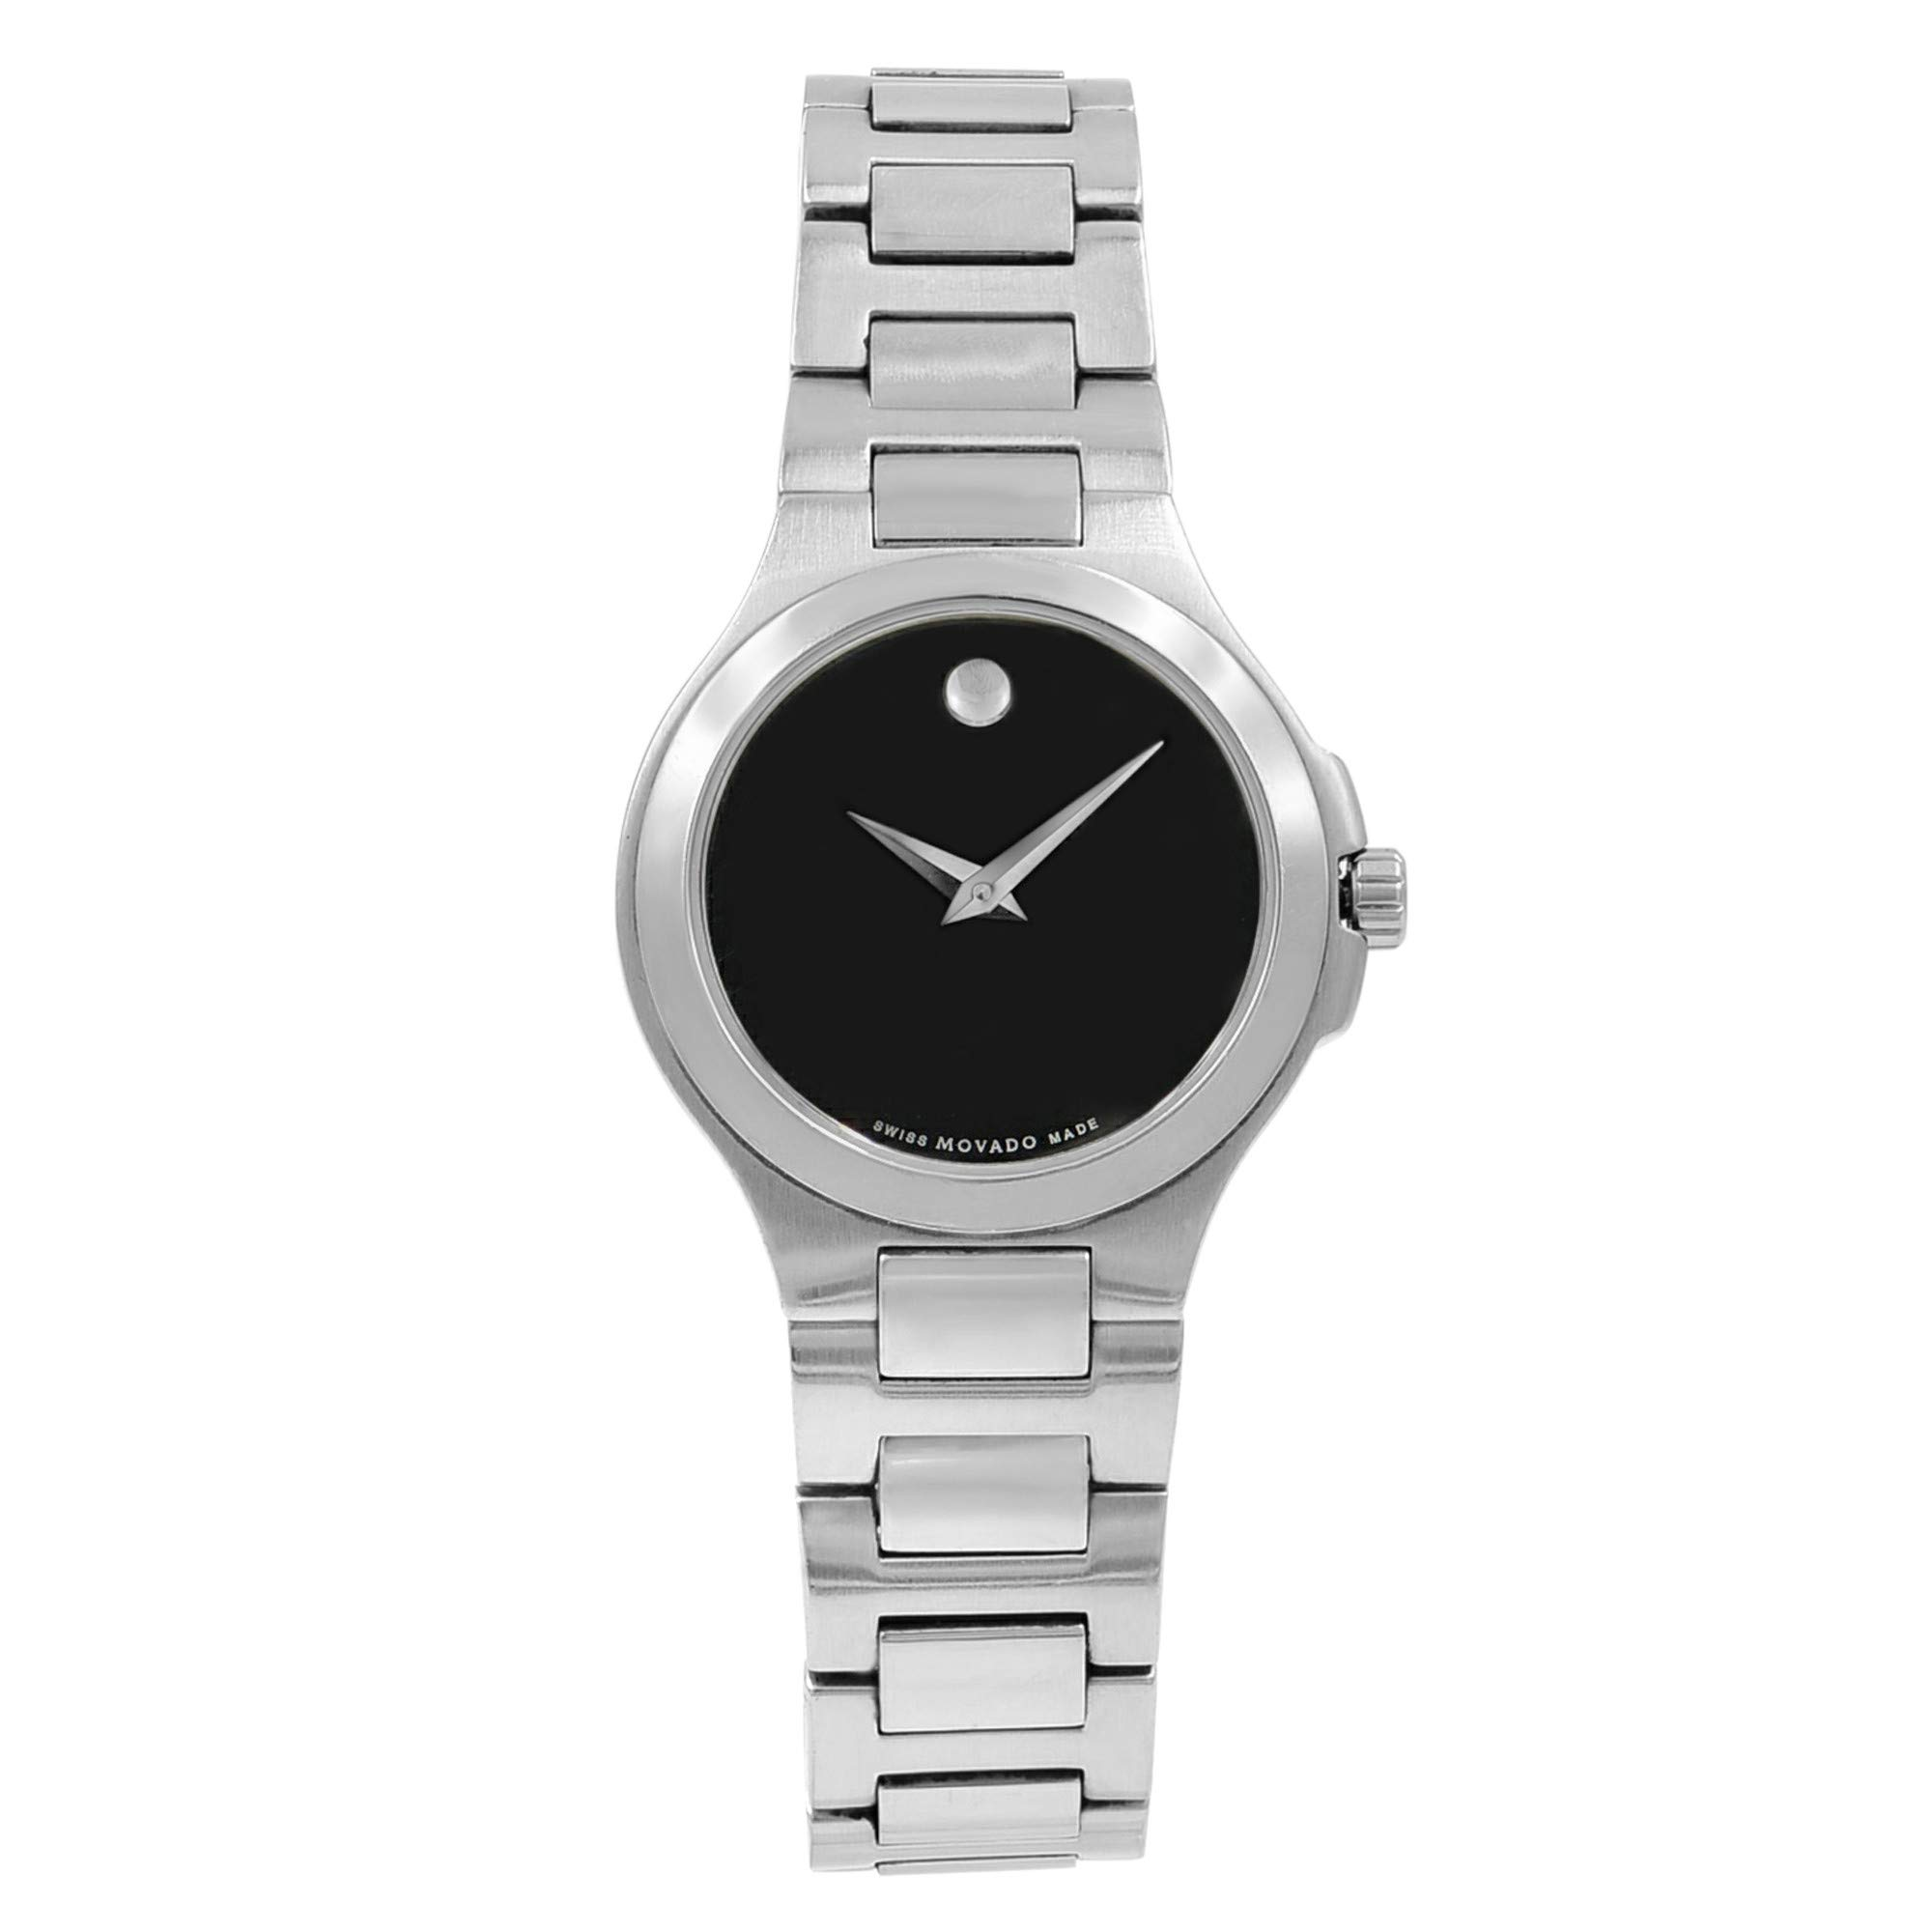 Movado Corporate Quartz Male Watch 0606164 (Certified Pre-Owned)